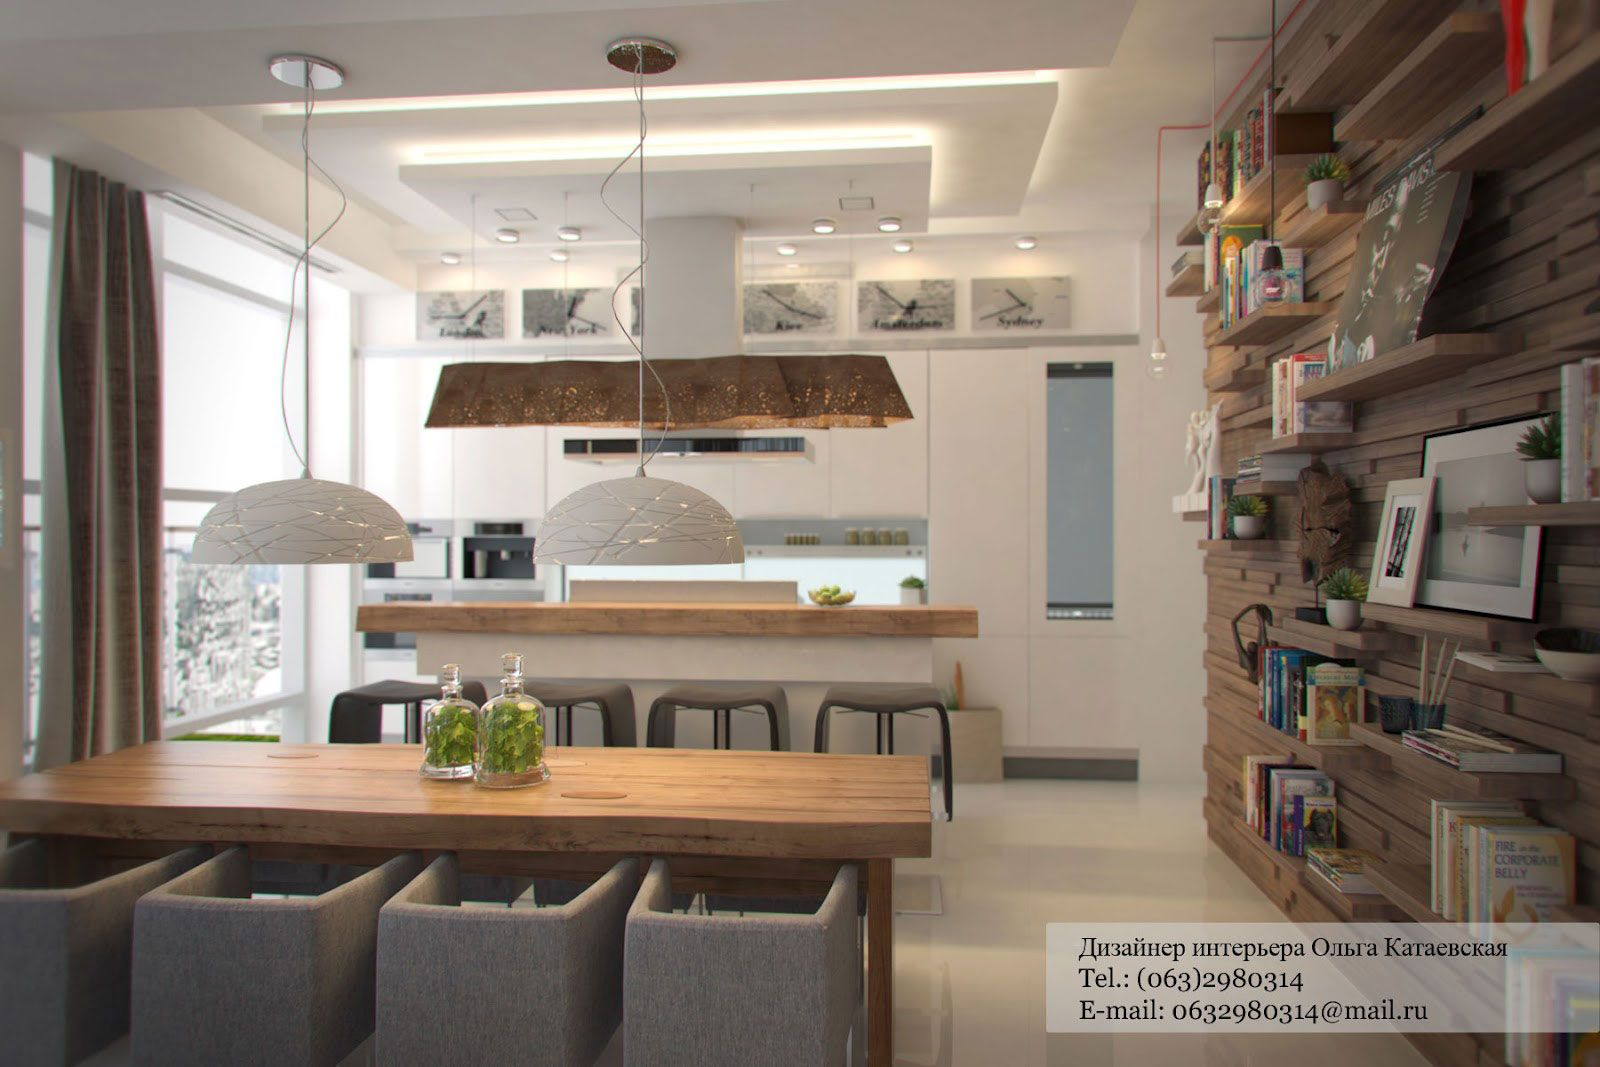 Modern Rustic Studio Apartment Kitchen And Dining Room Combined ...